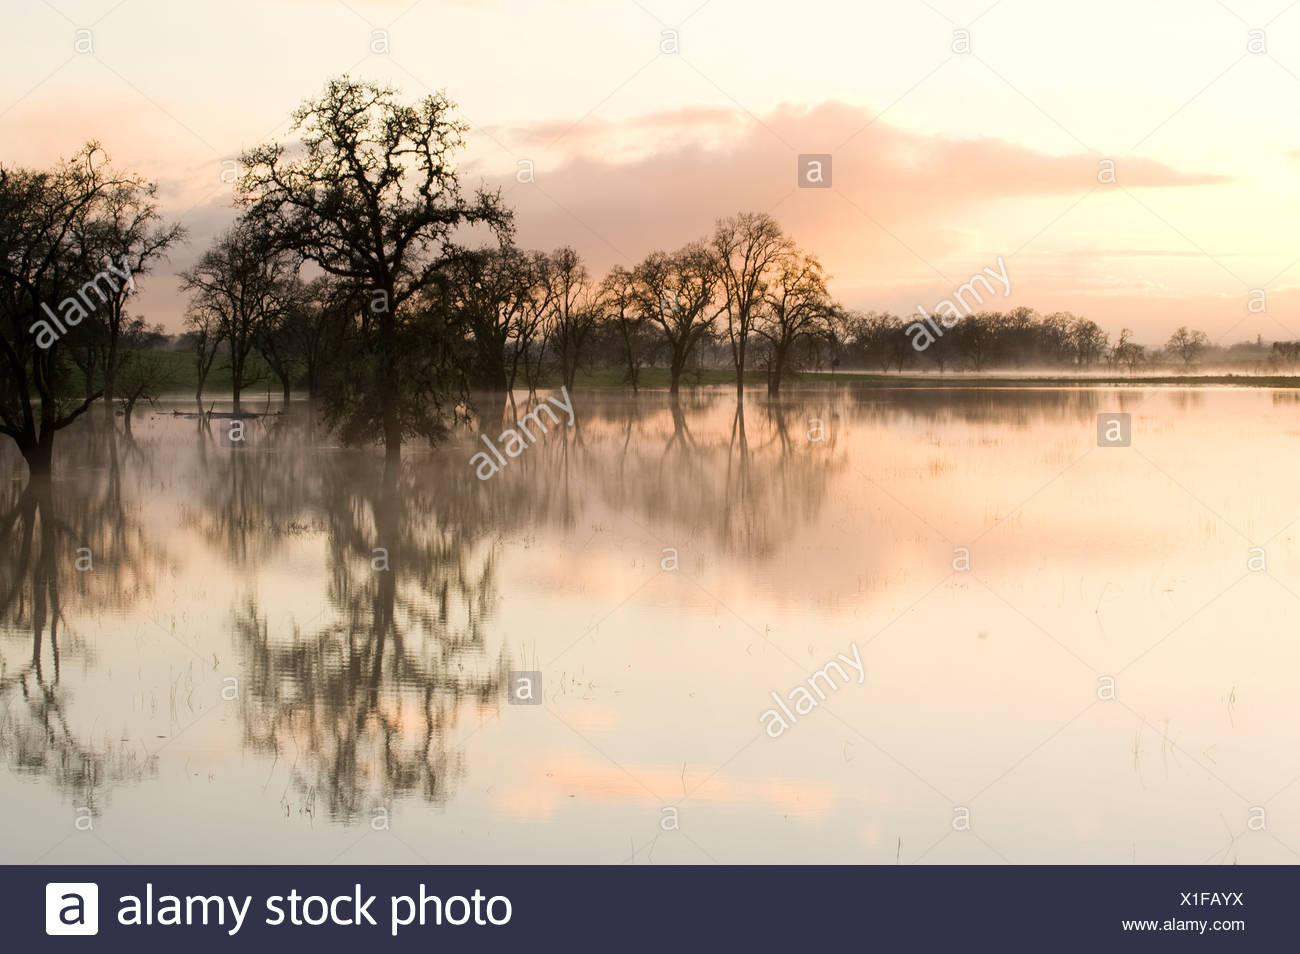 Trees and reflections in water - Stock Image